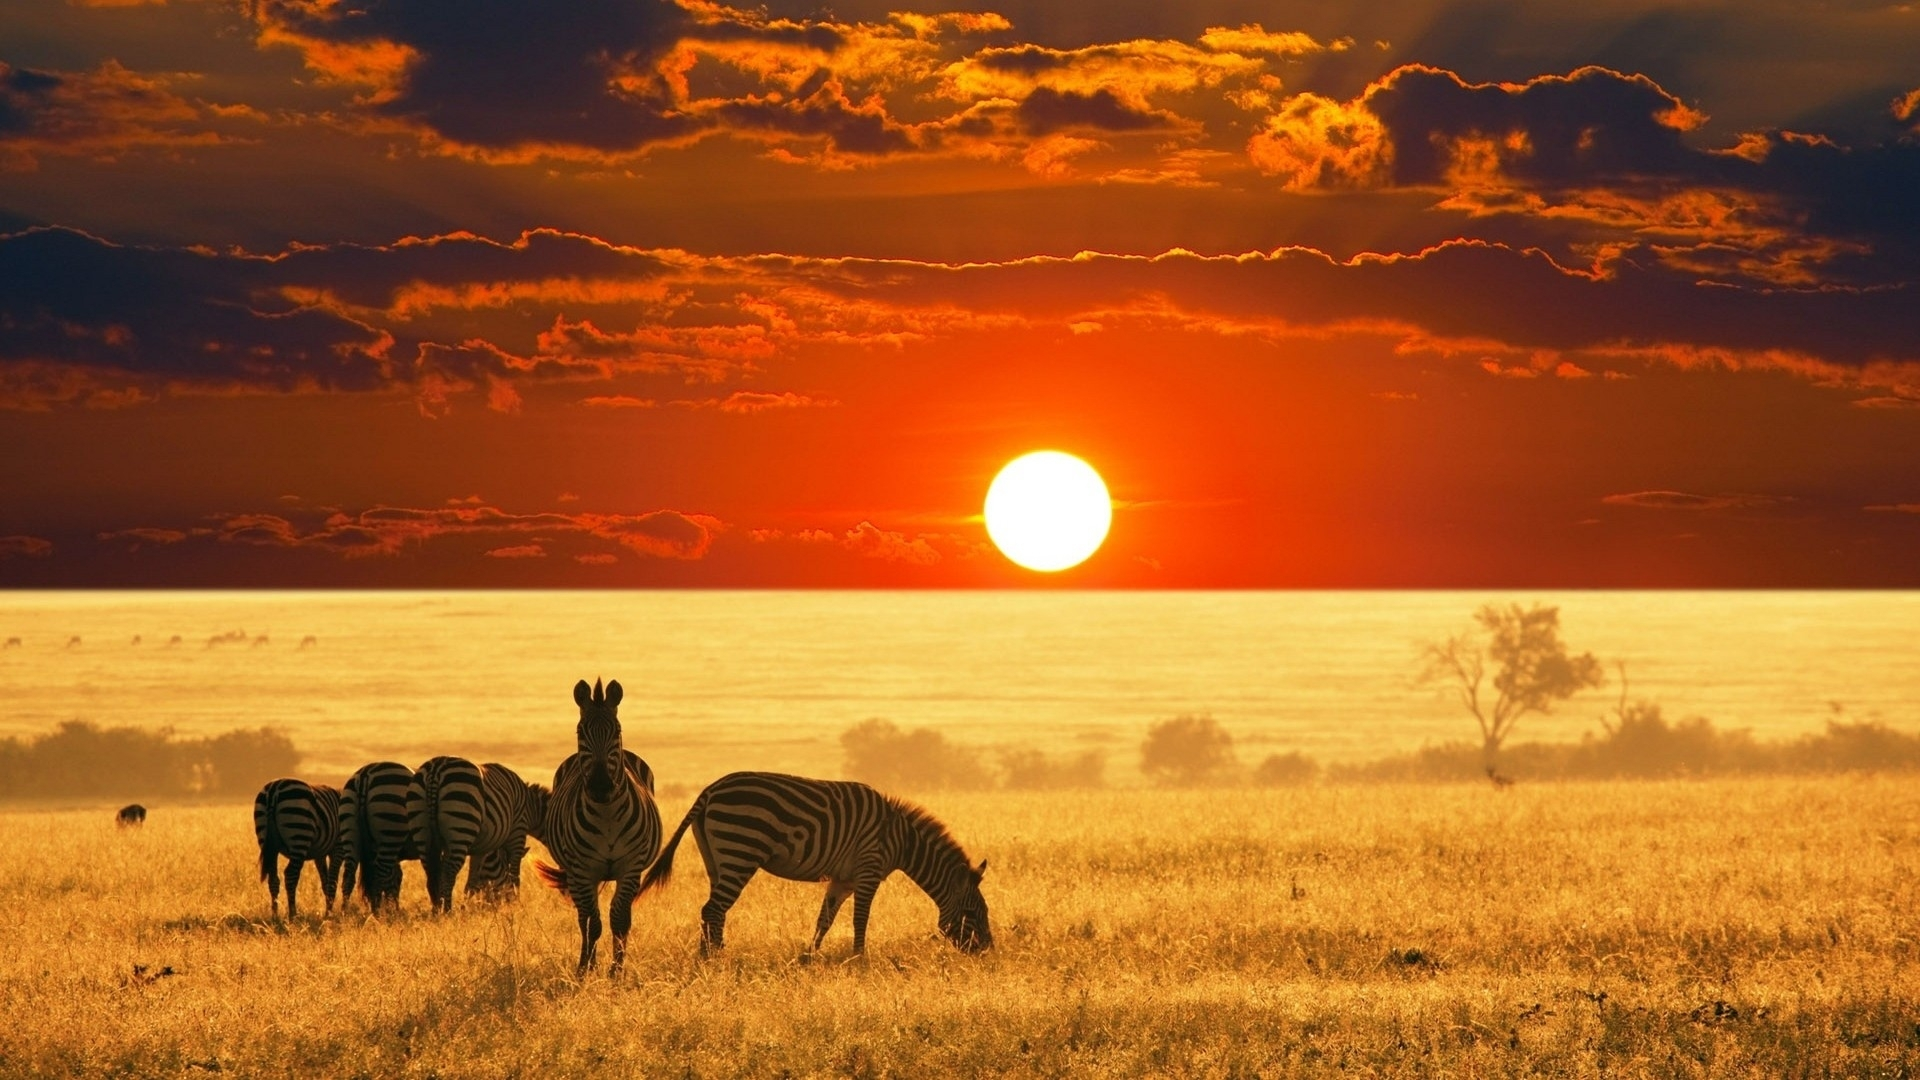 african animals wallpaper hd | pixelstalk